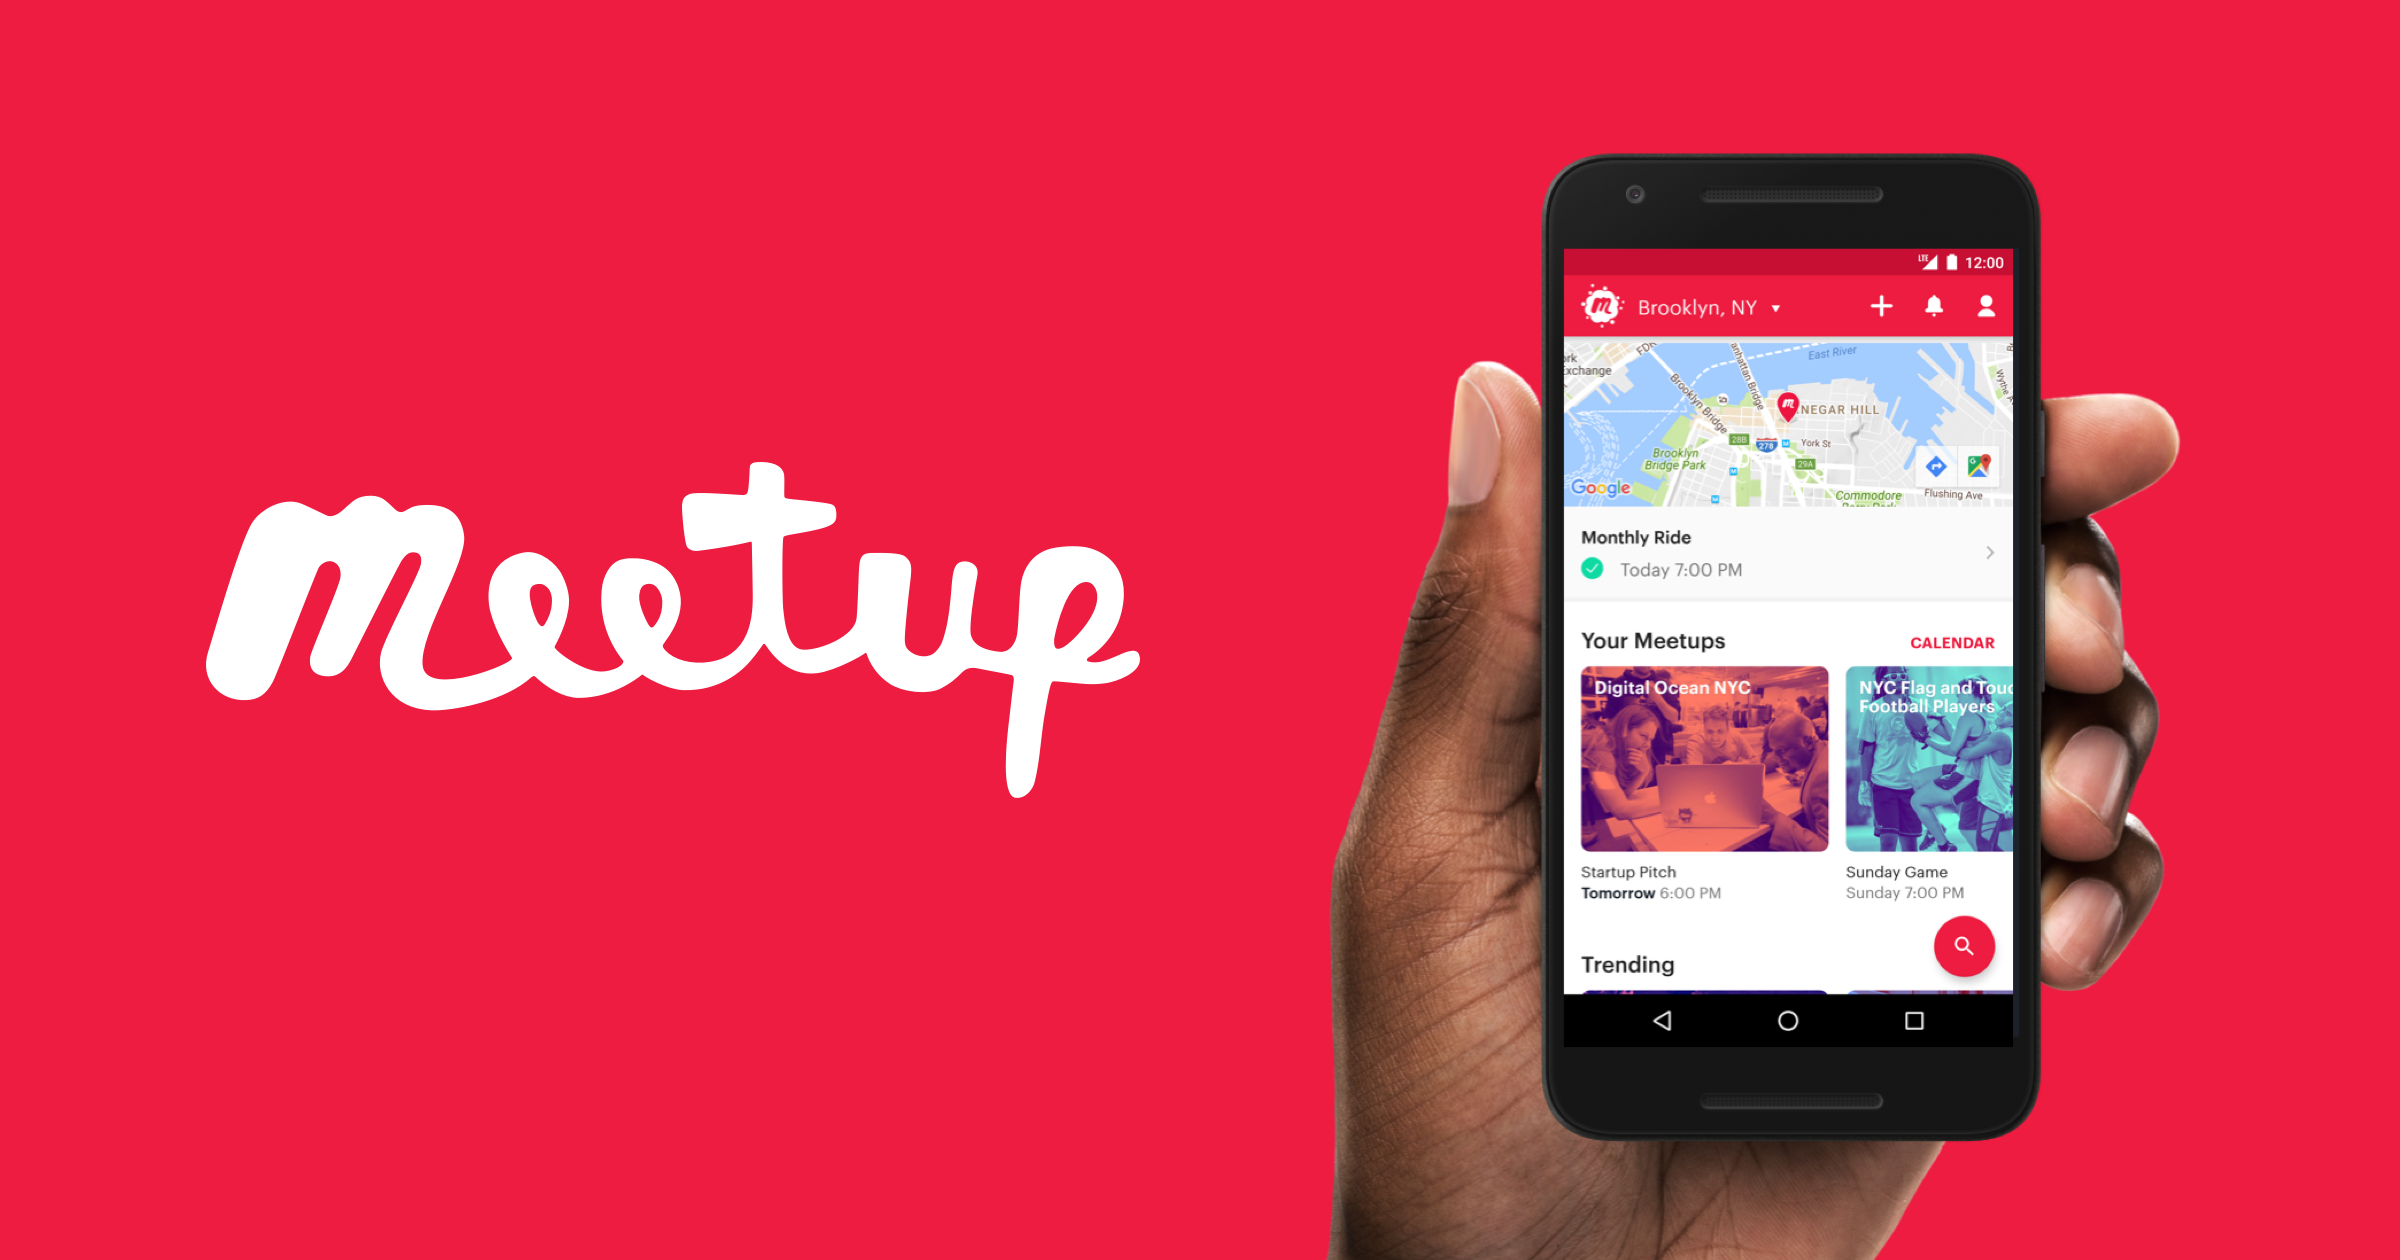 meetup - event discovery apps